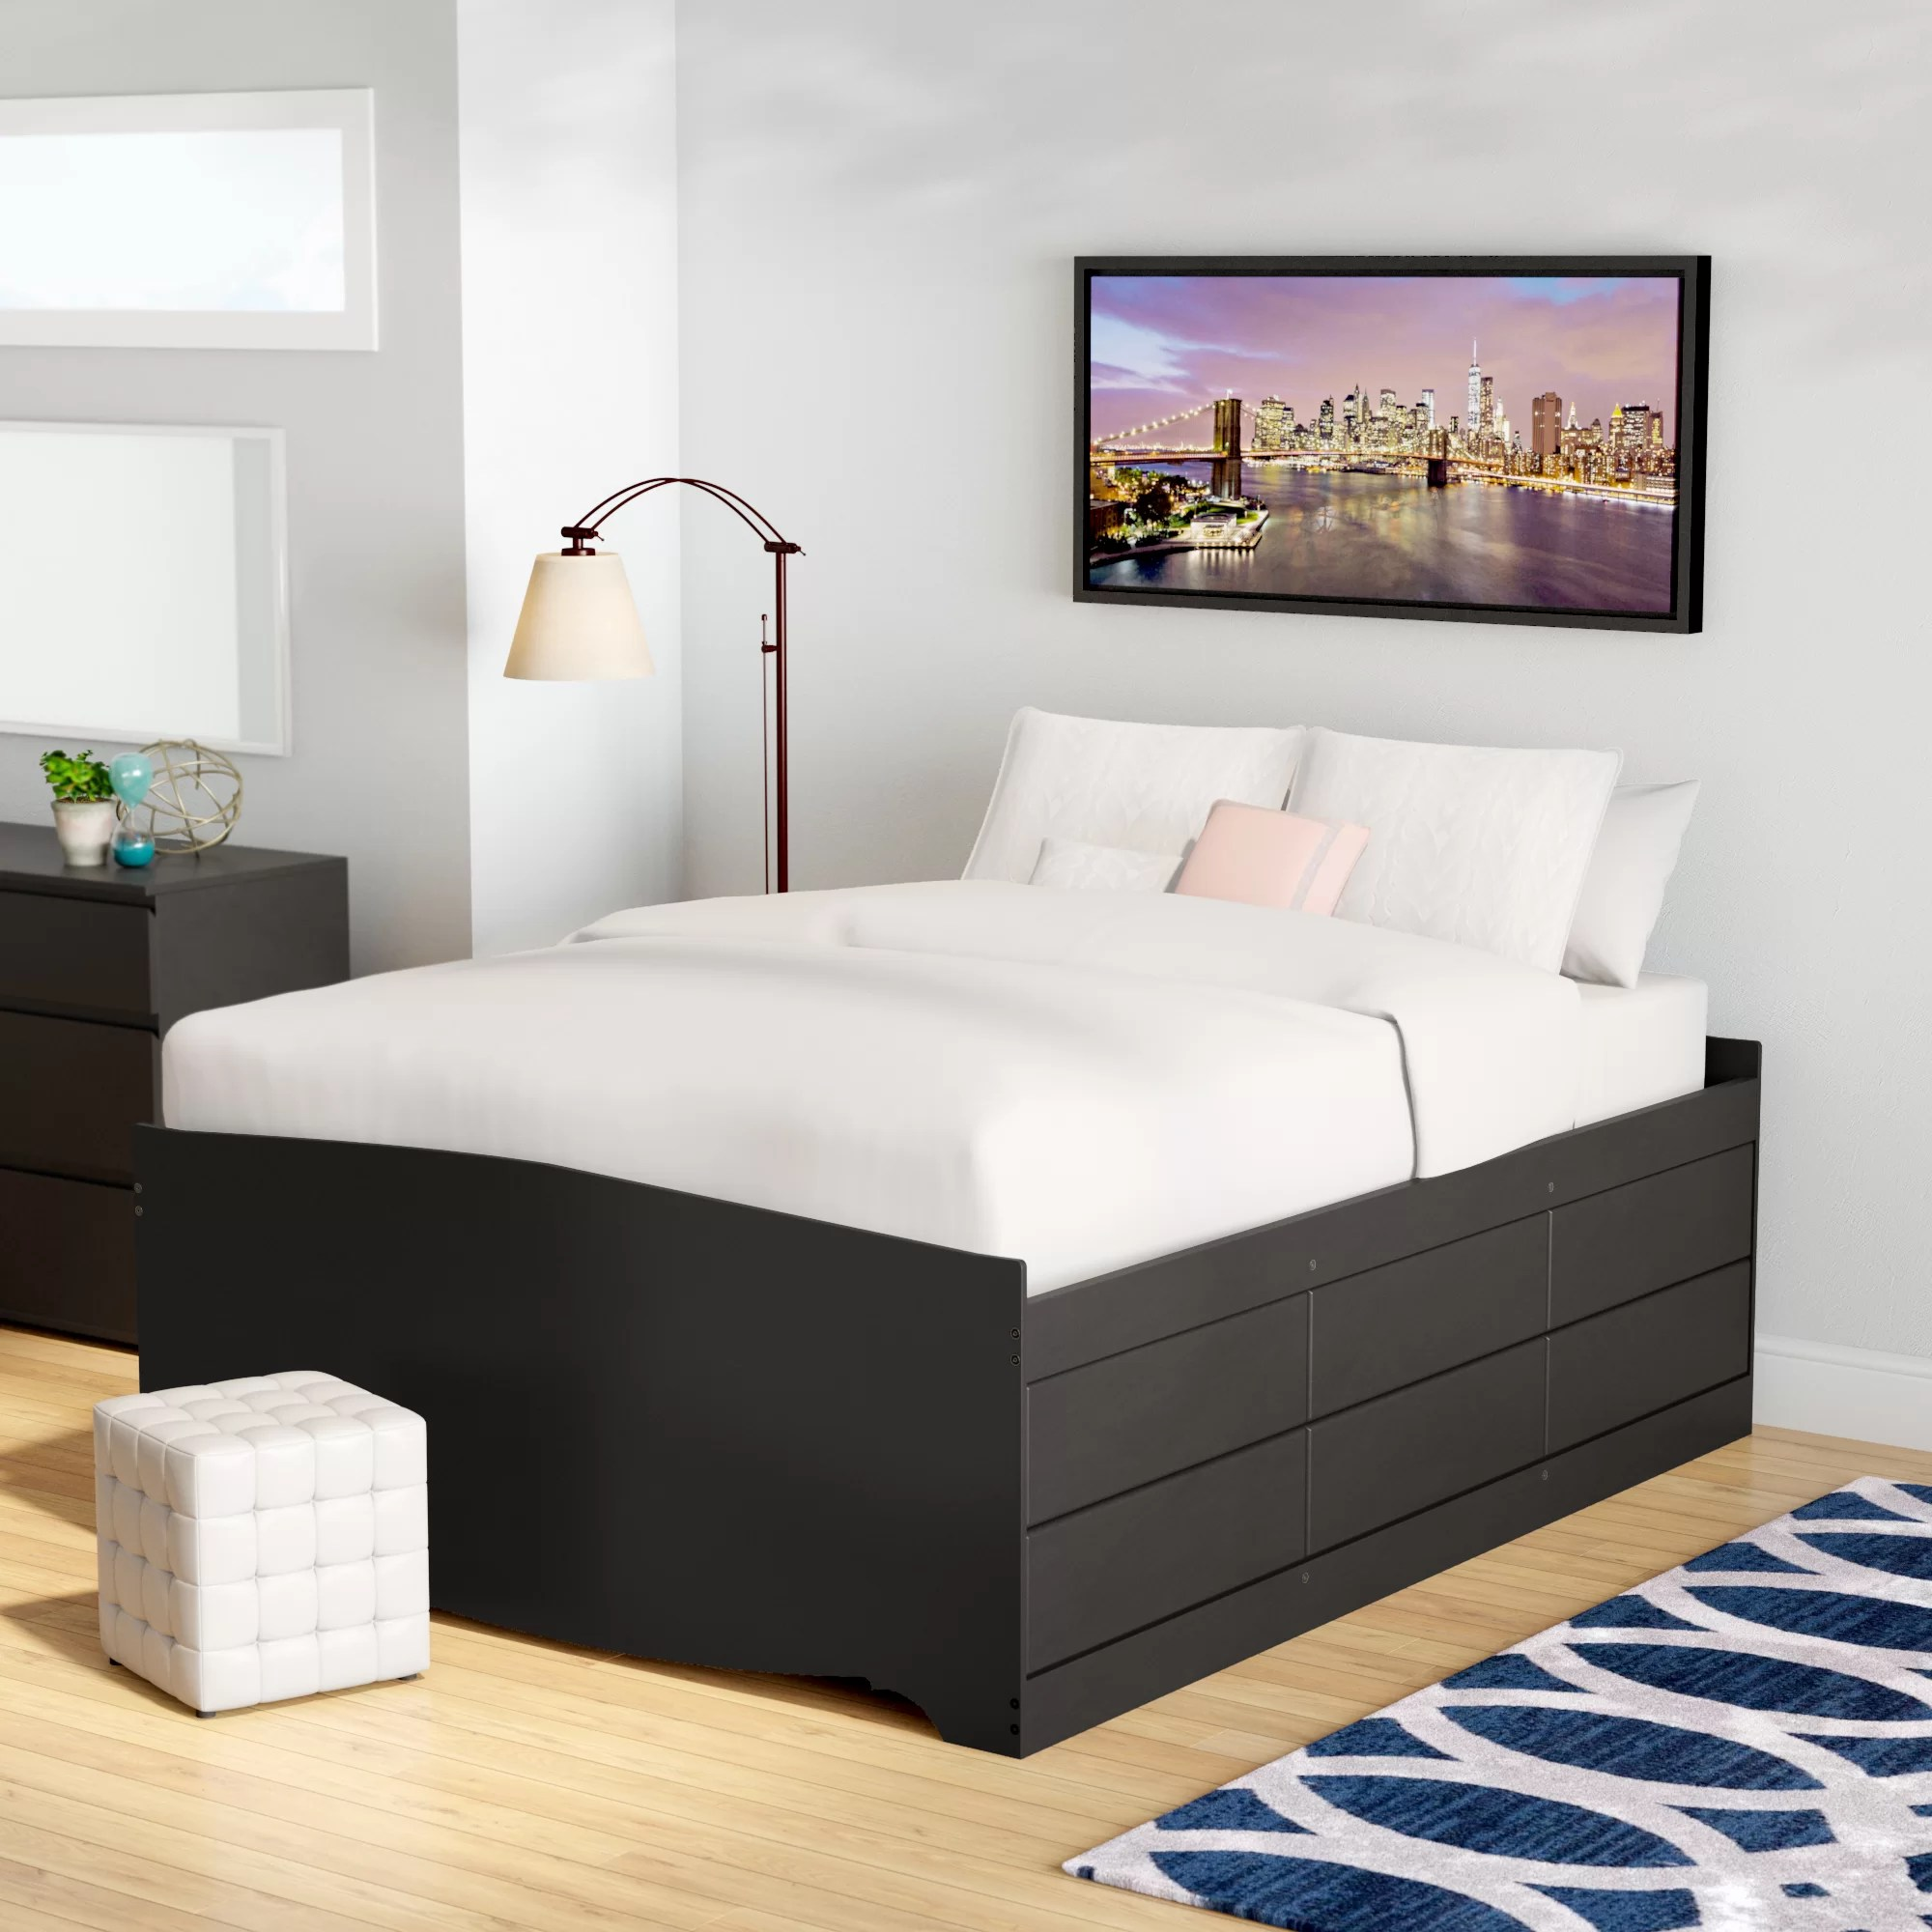 Bedding Storage Nolanville Storage Platform Bed